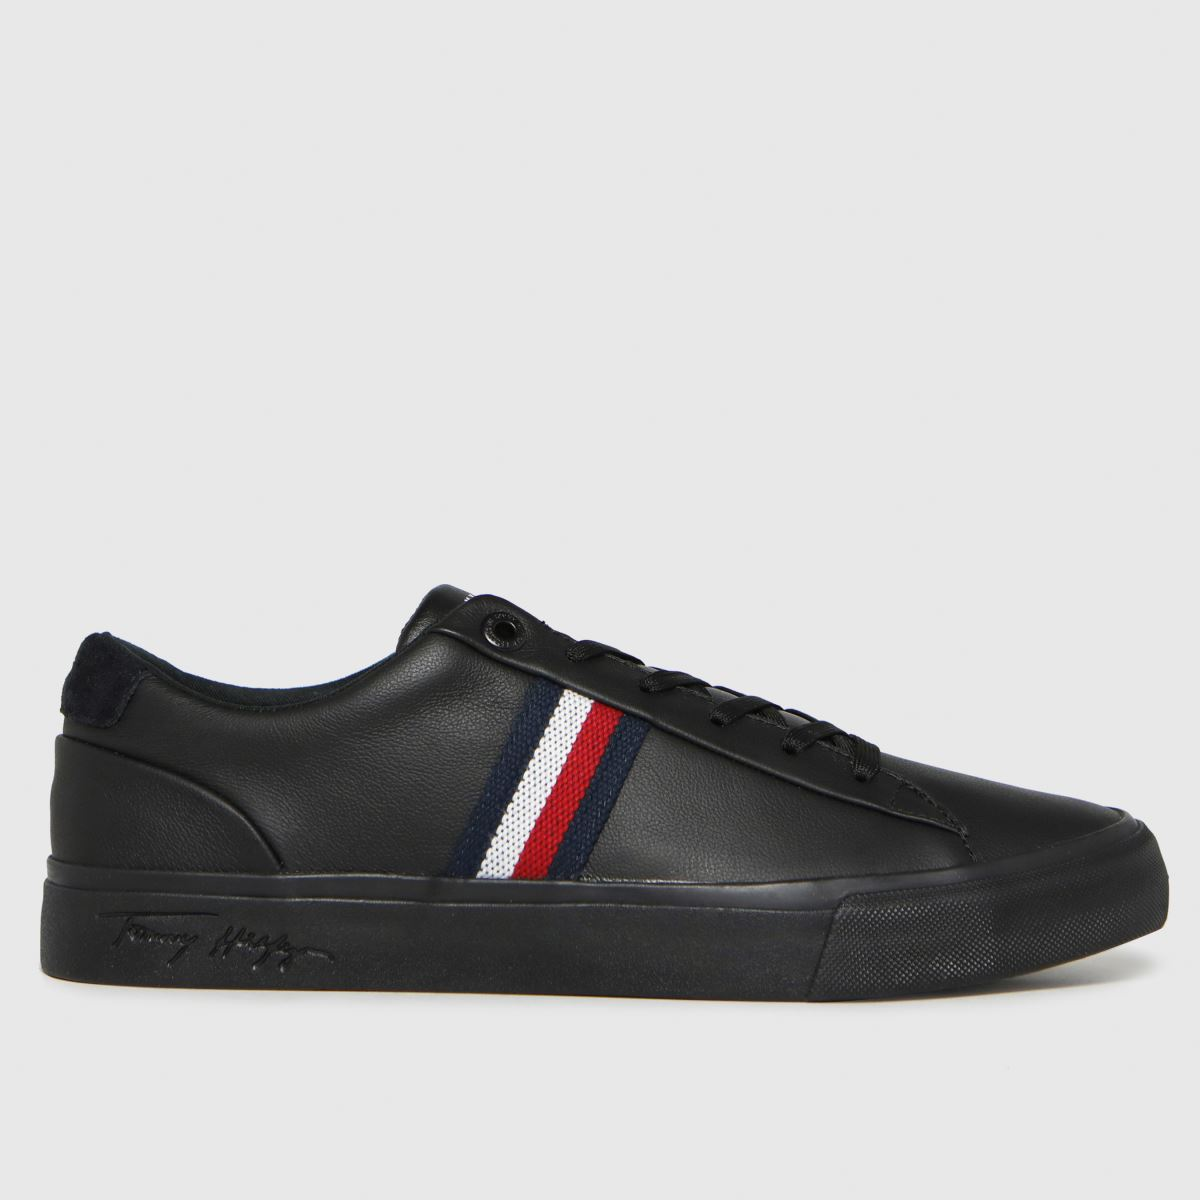 Tommy Hilfiger Black Corporate Leather Sneaker Trainers